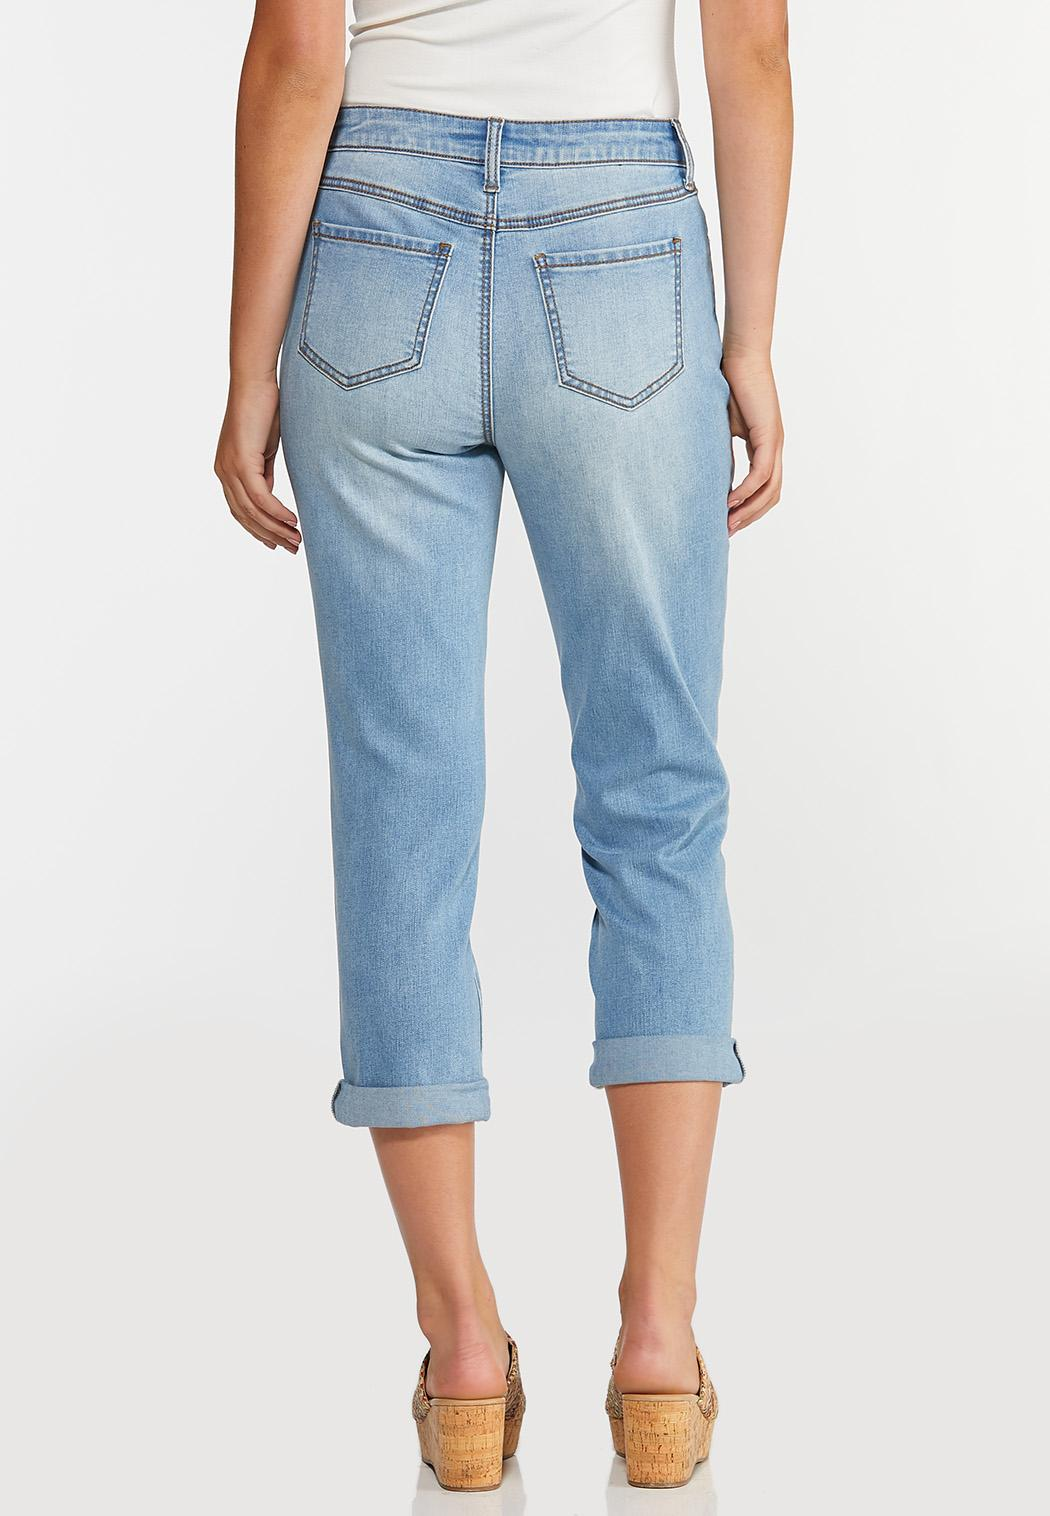 Cropped Lightwash Girlfriend Jeans (Item #44309293)